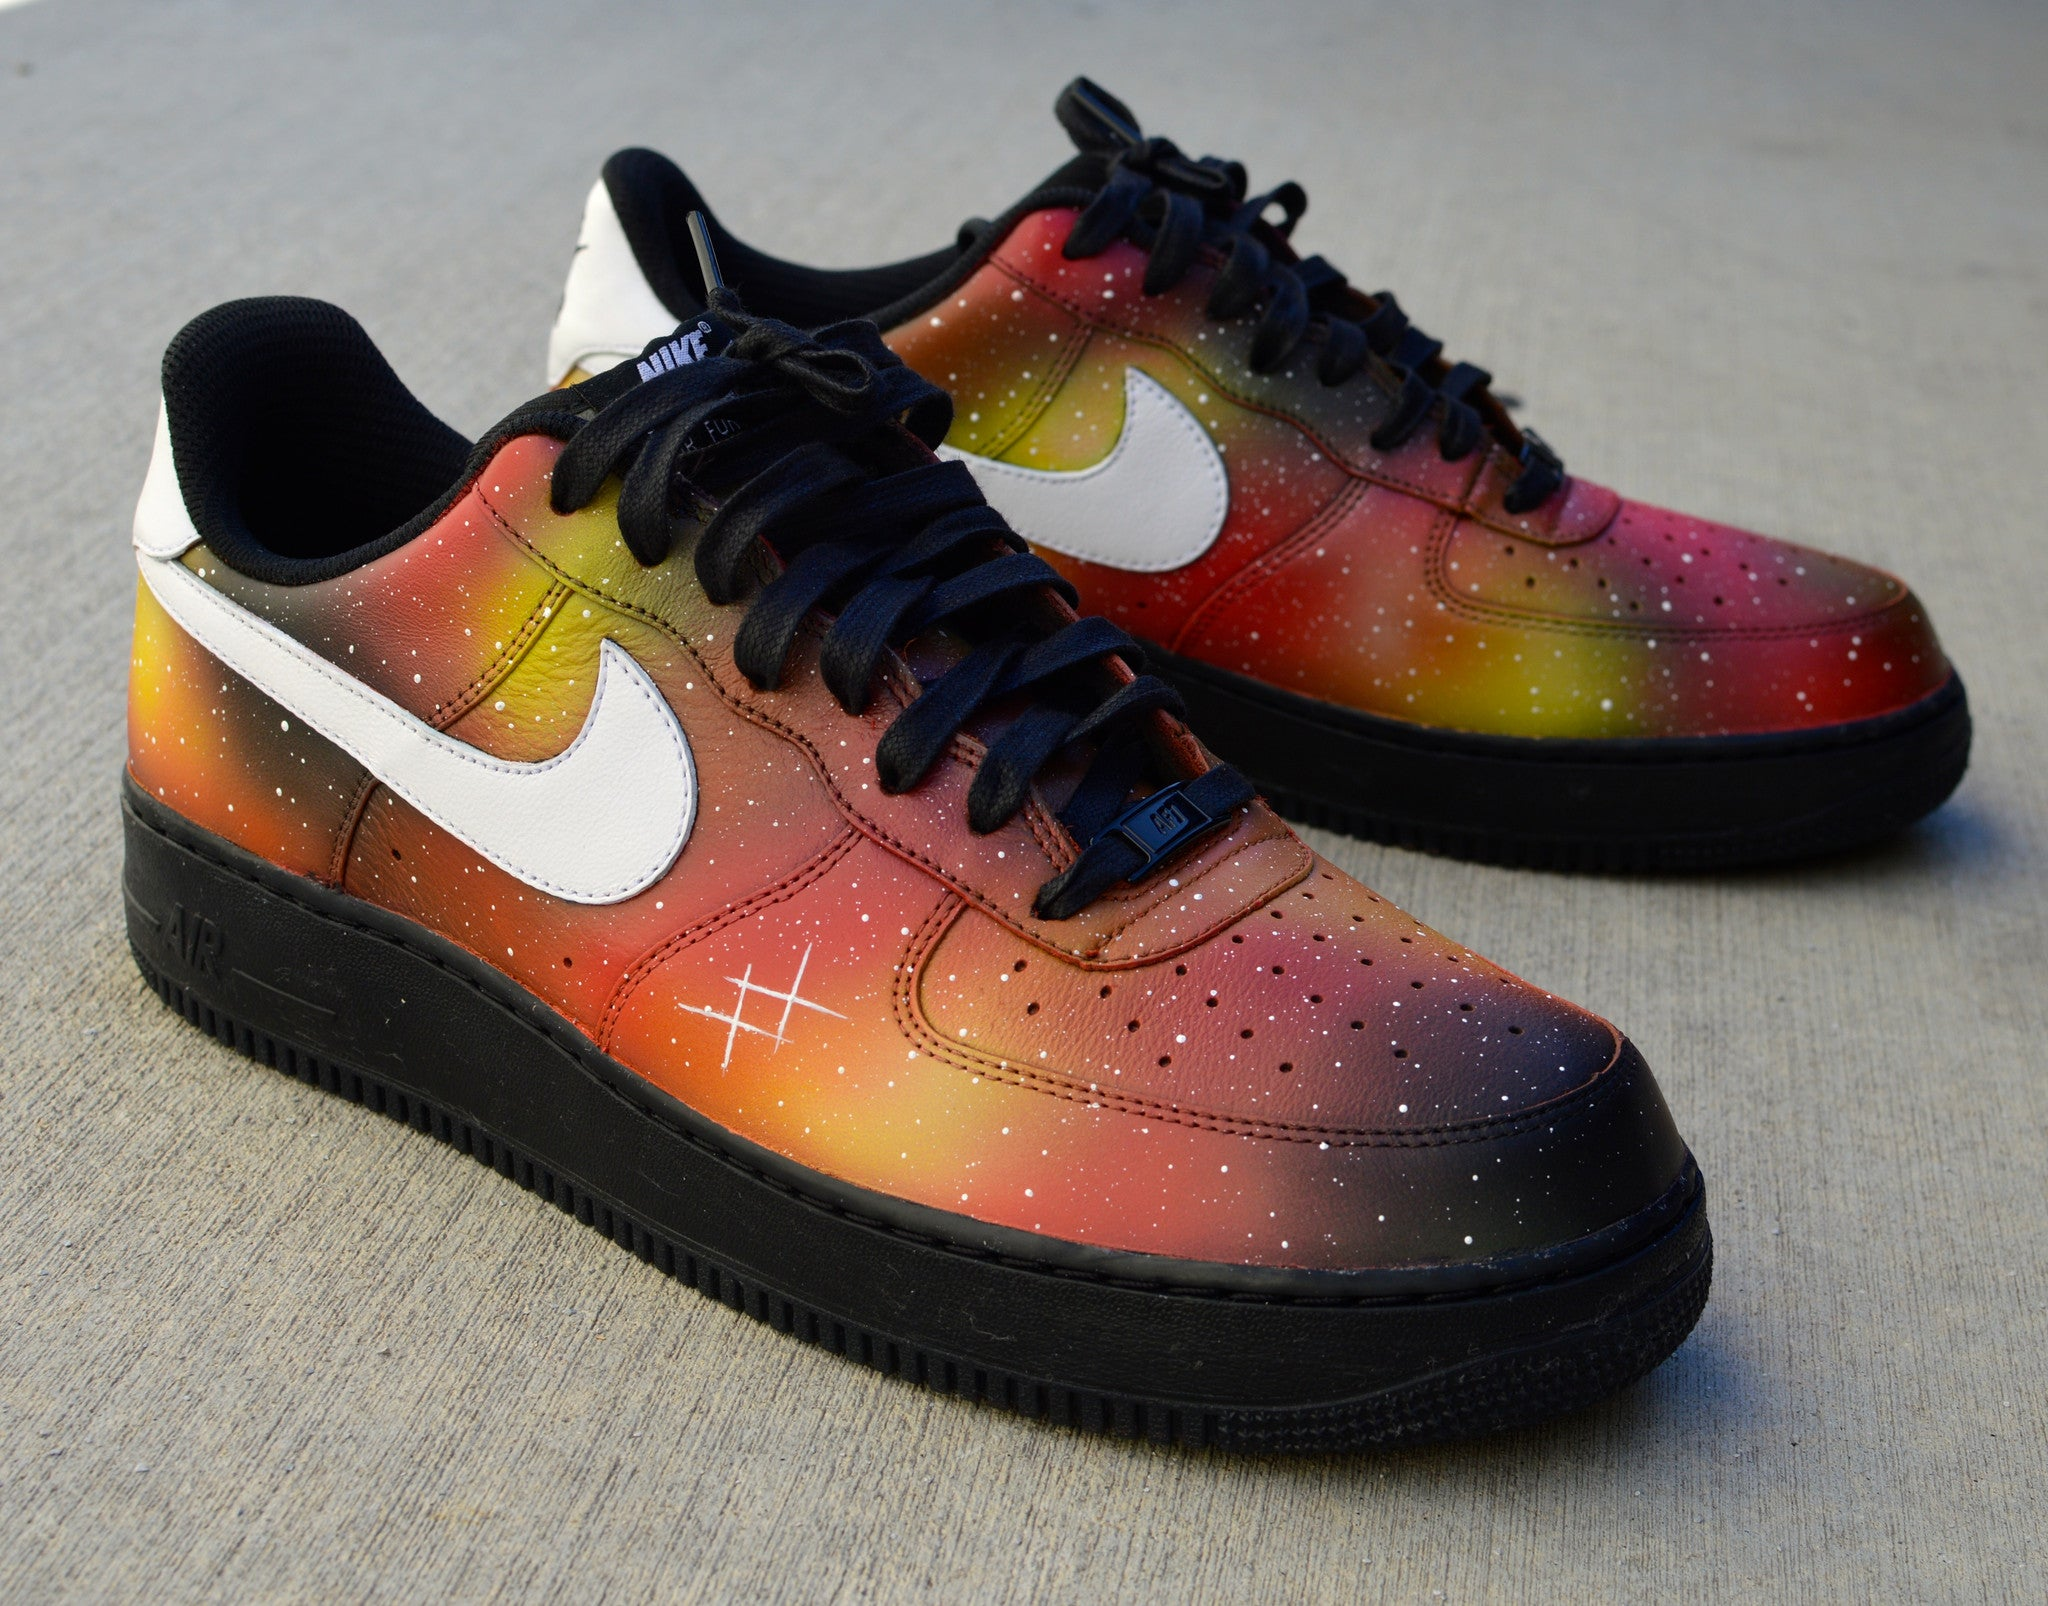 new style a0b68 cefc7 Custom nike air force 1 Custom Sneakers, Hand Painted Shoes, Solar Flare Galaxy  Nike AF1s, ...